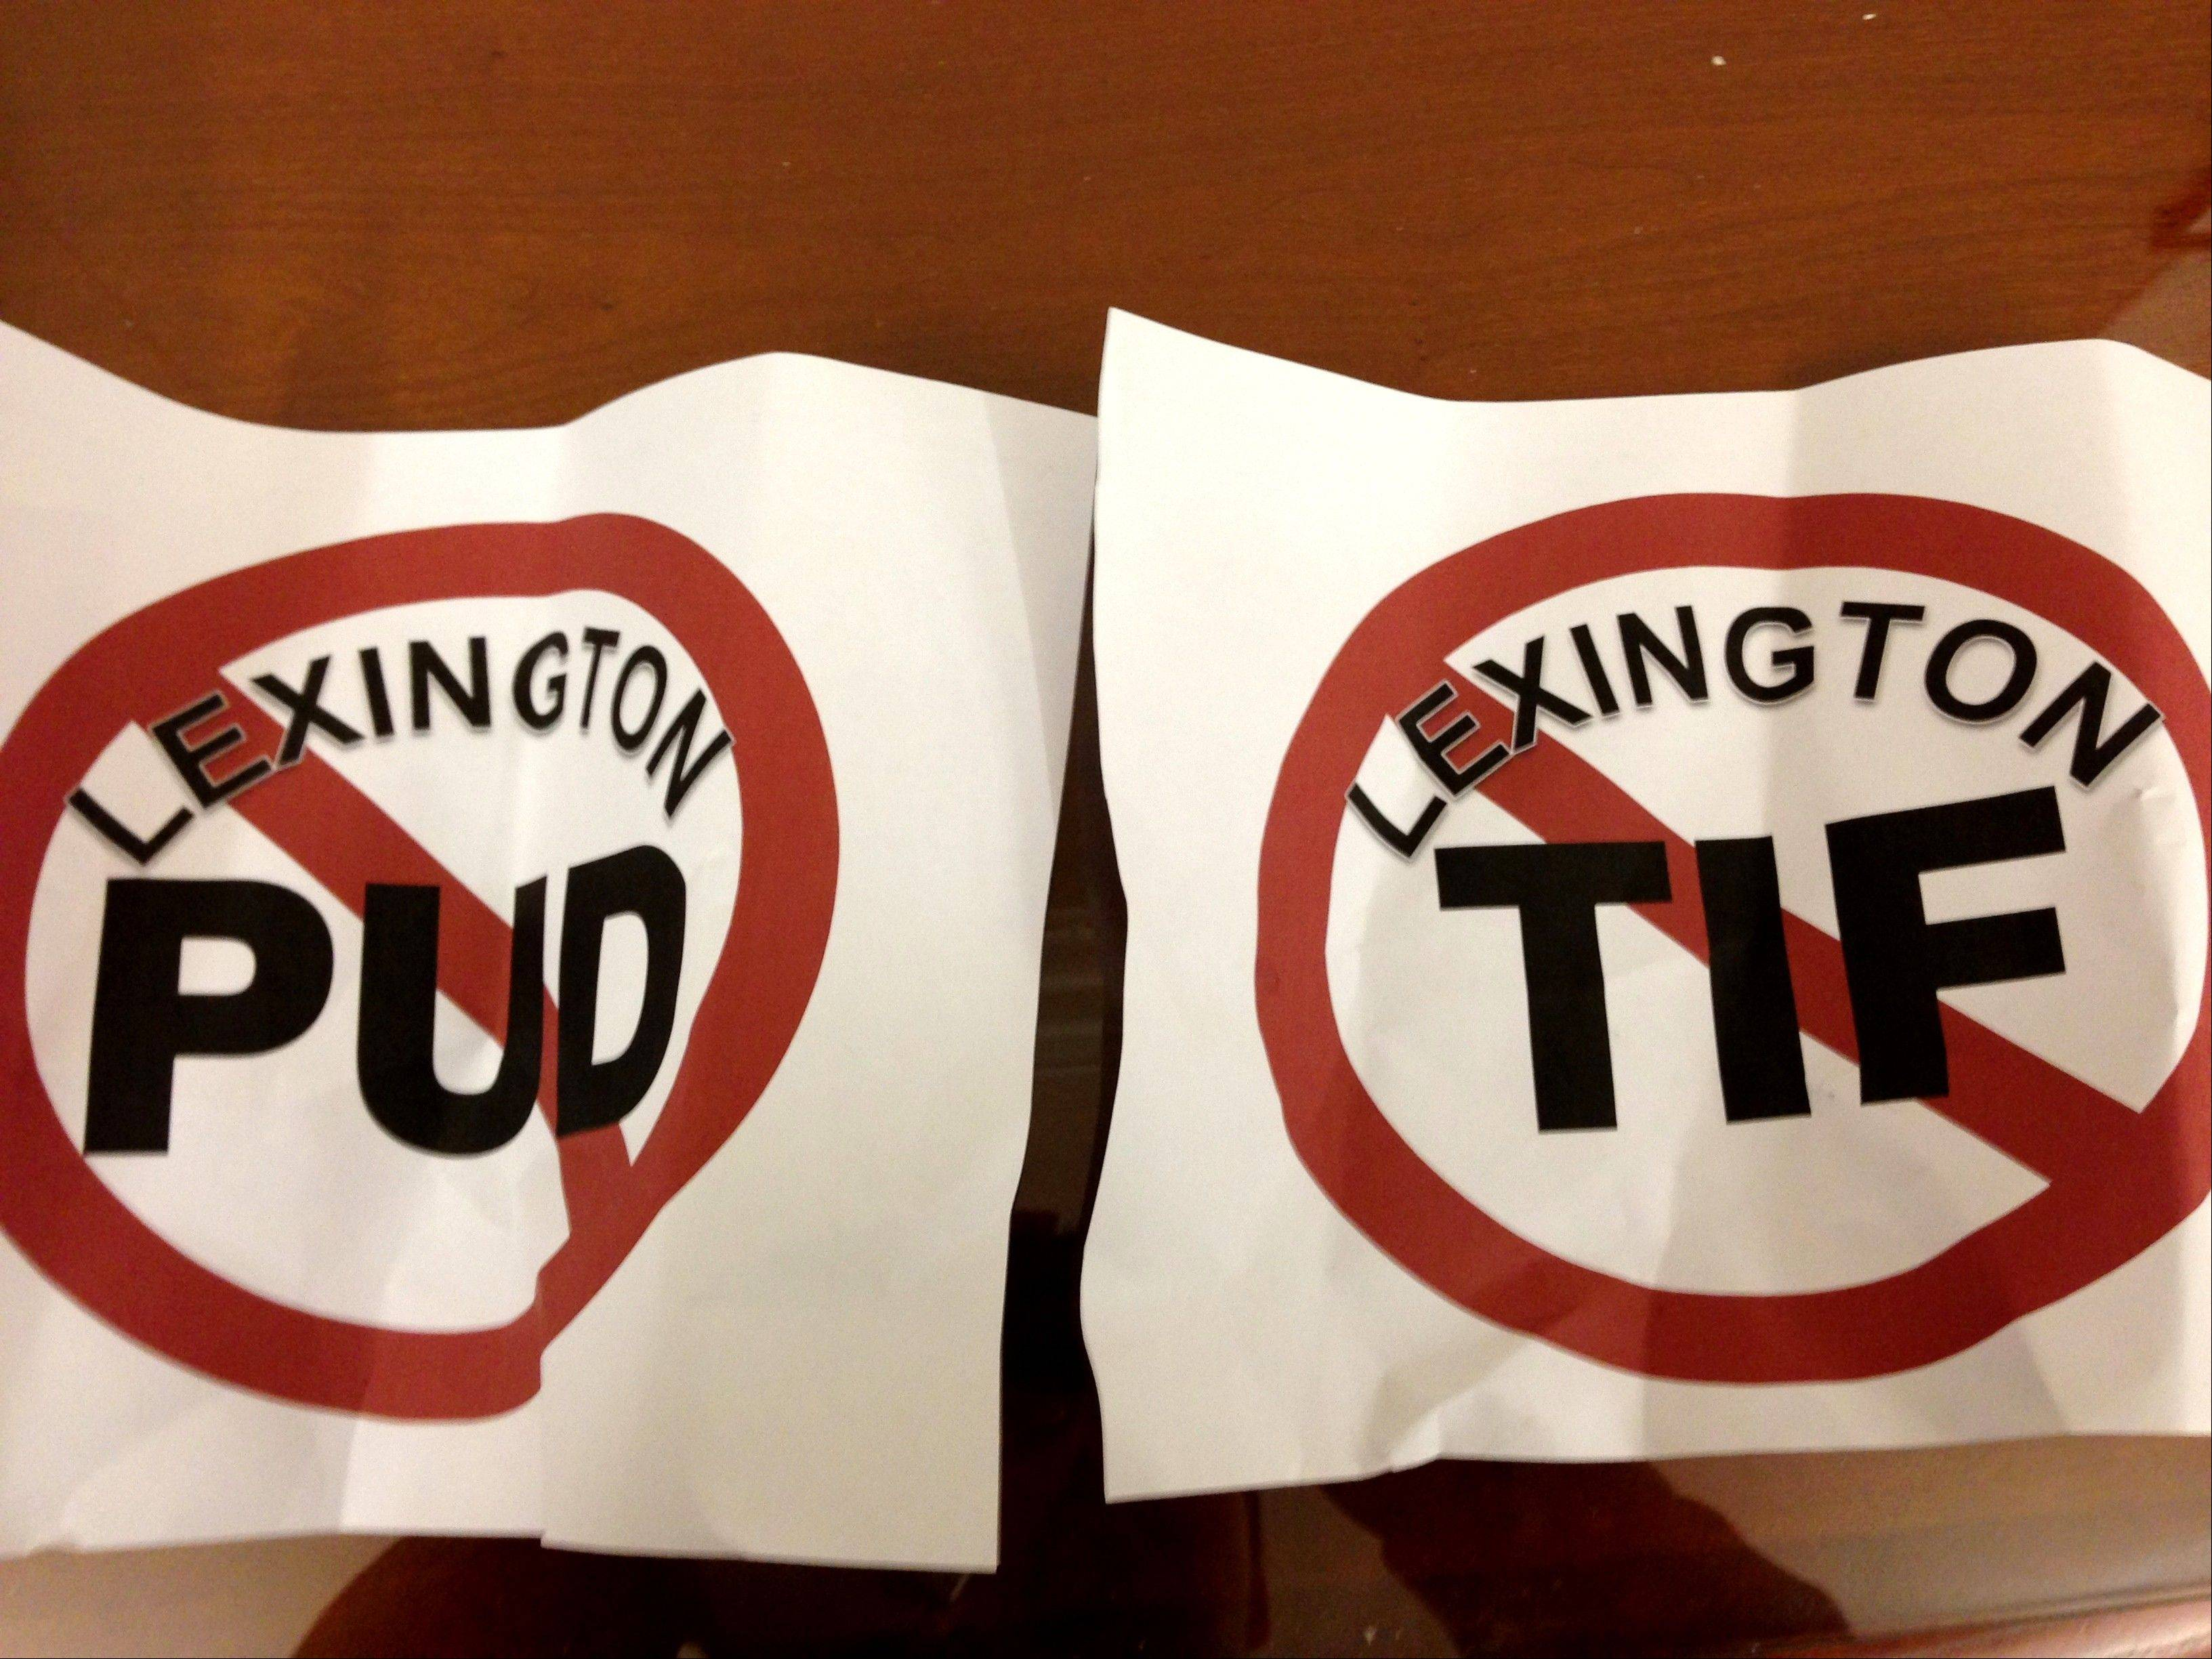 Crumpled versions of handheld signs littered the floor of the St. Charles City Council chamber Monday night as opponents of the Lexington Club development left, stunned by a vote approving the project.